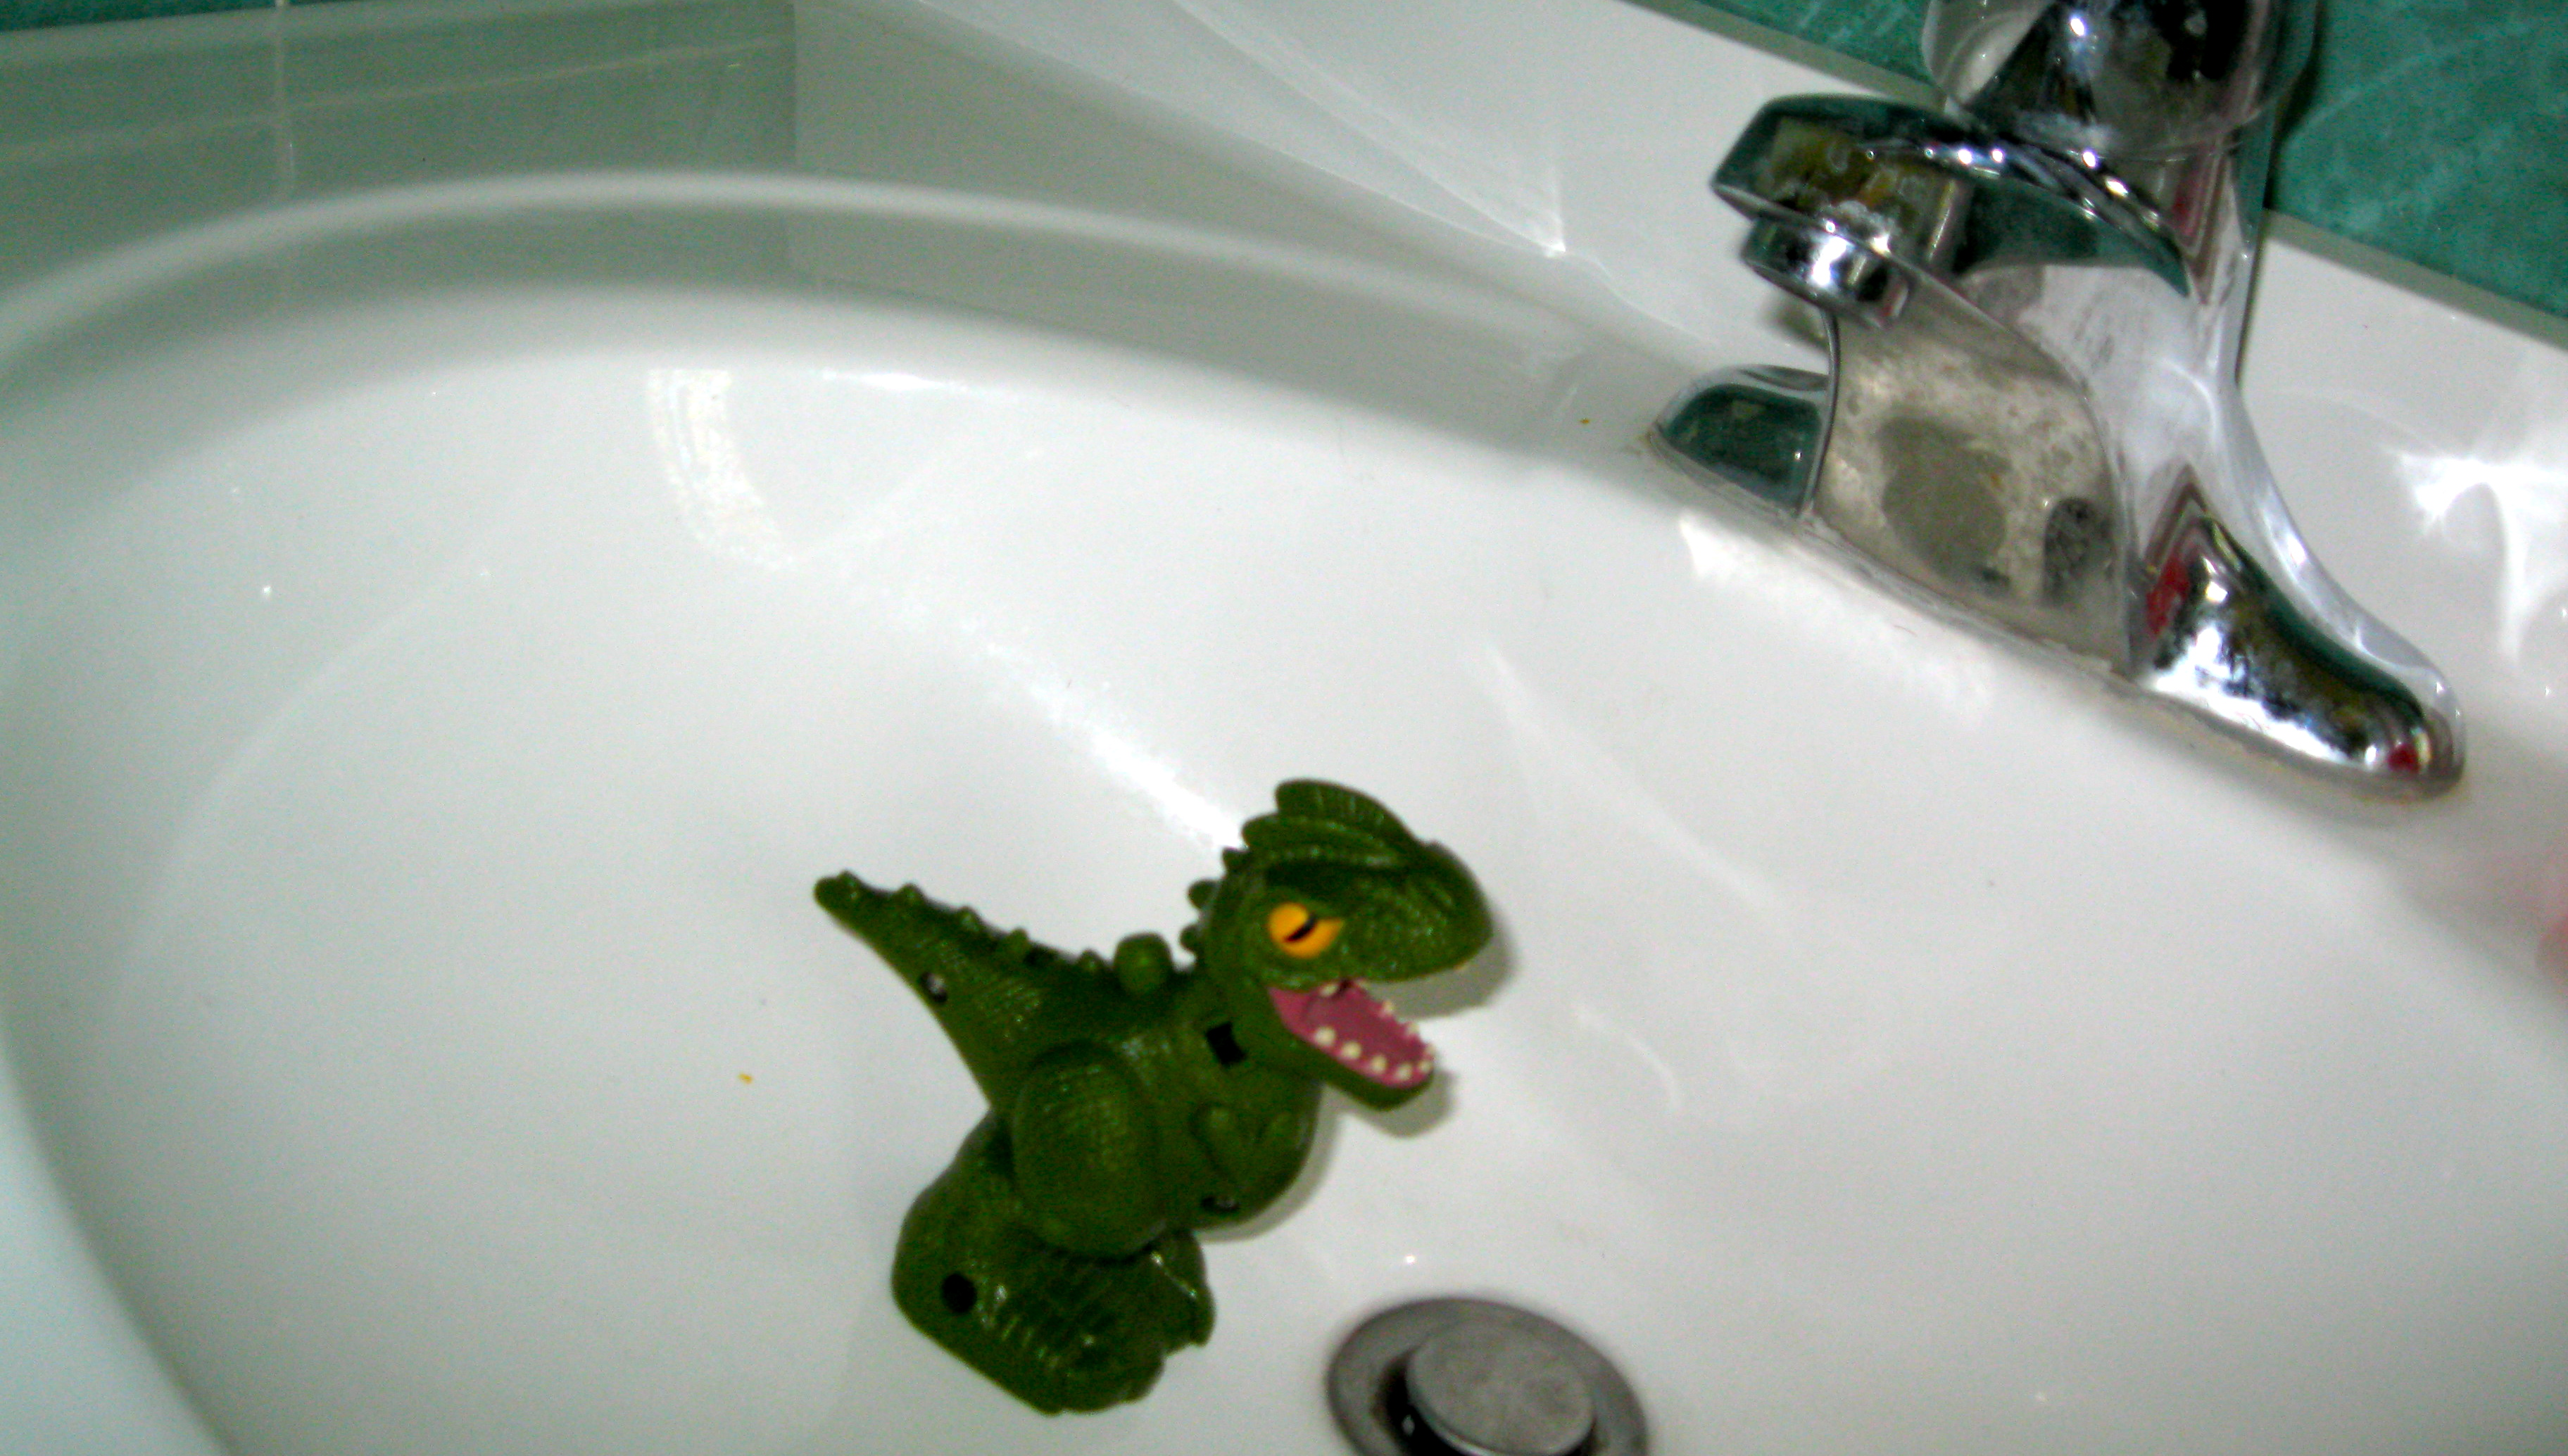 A Dinosaur in the Sink